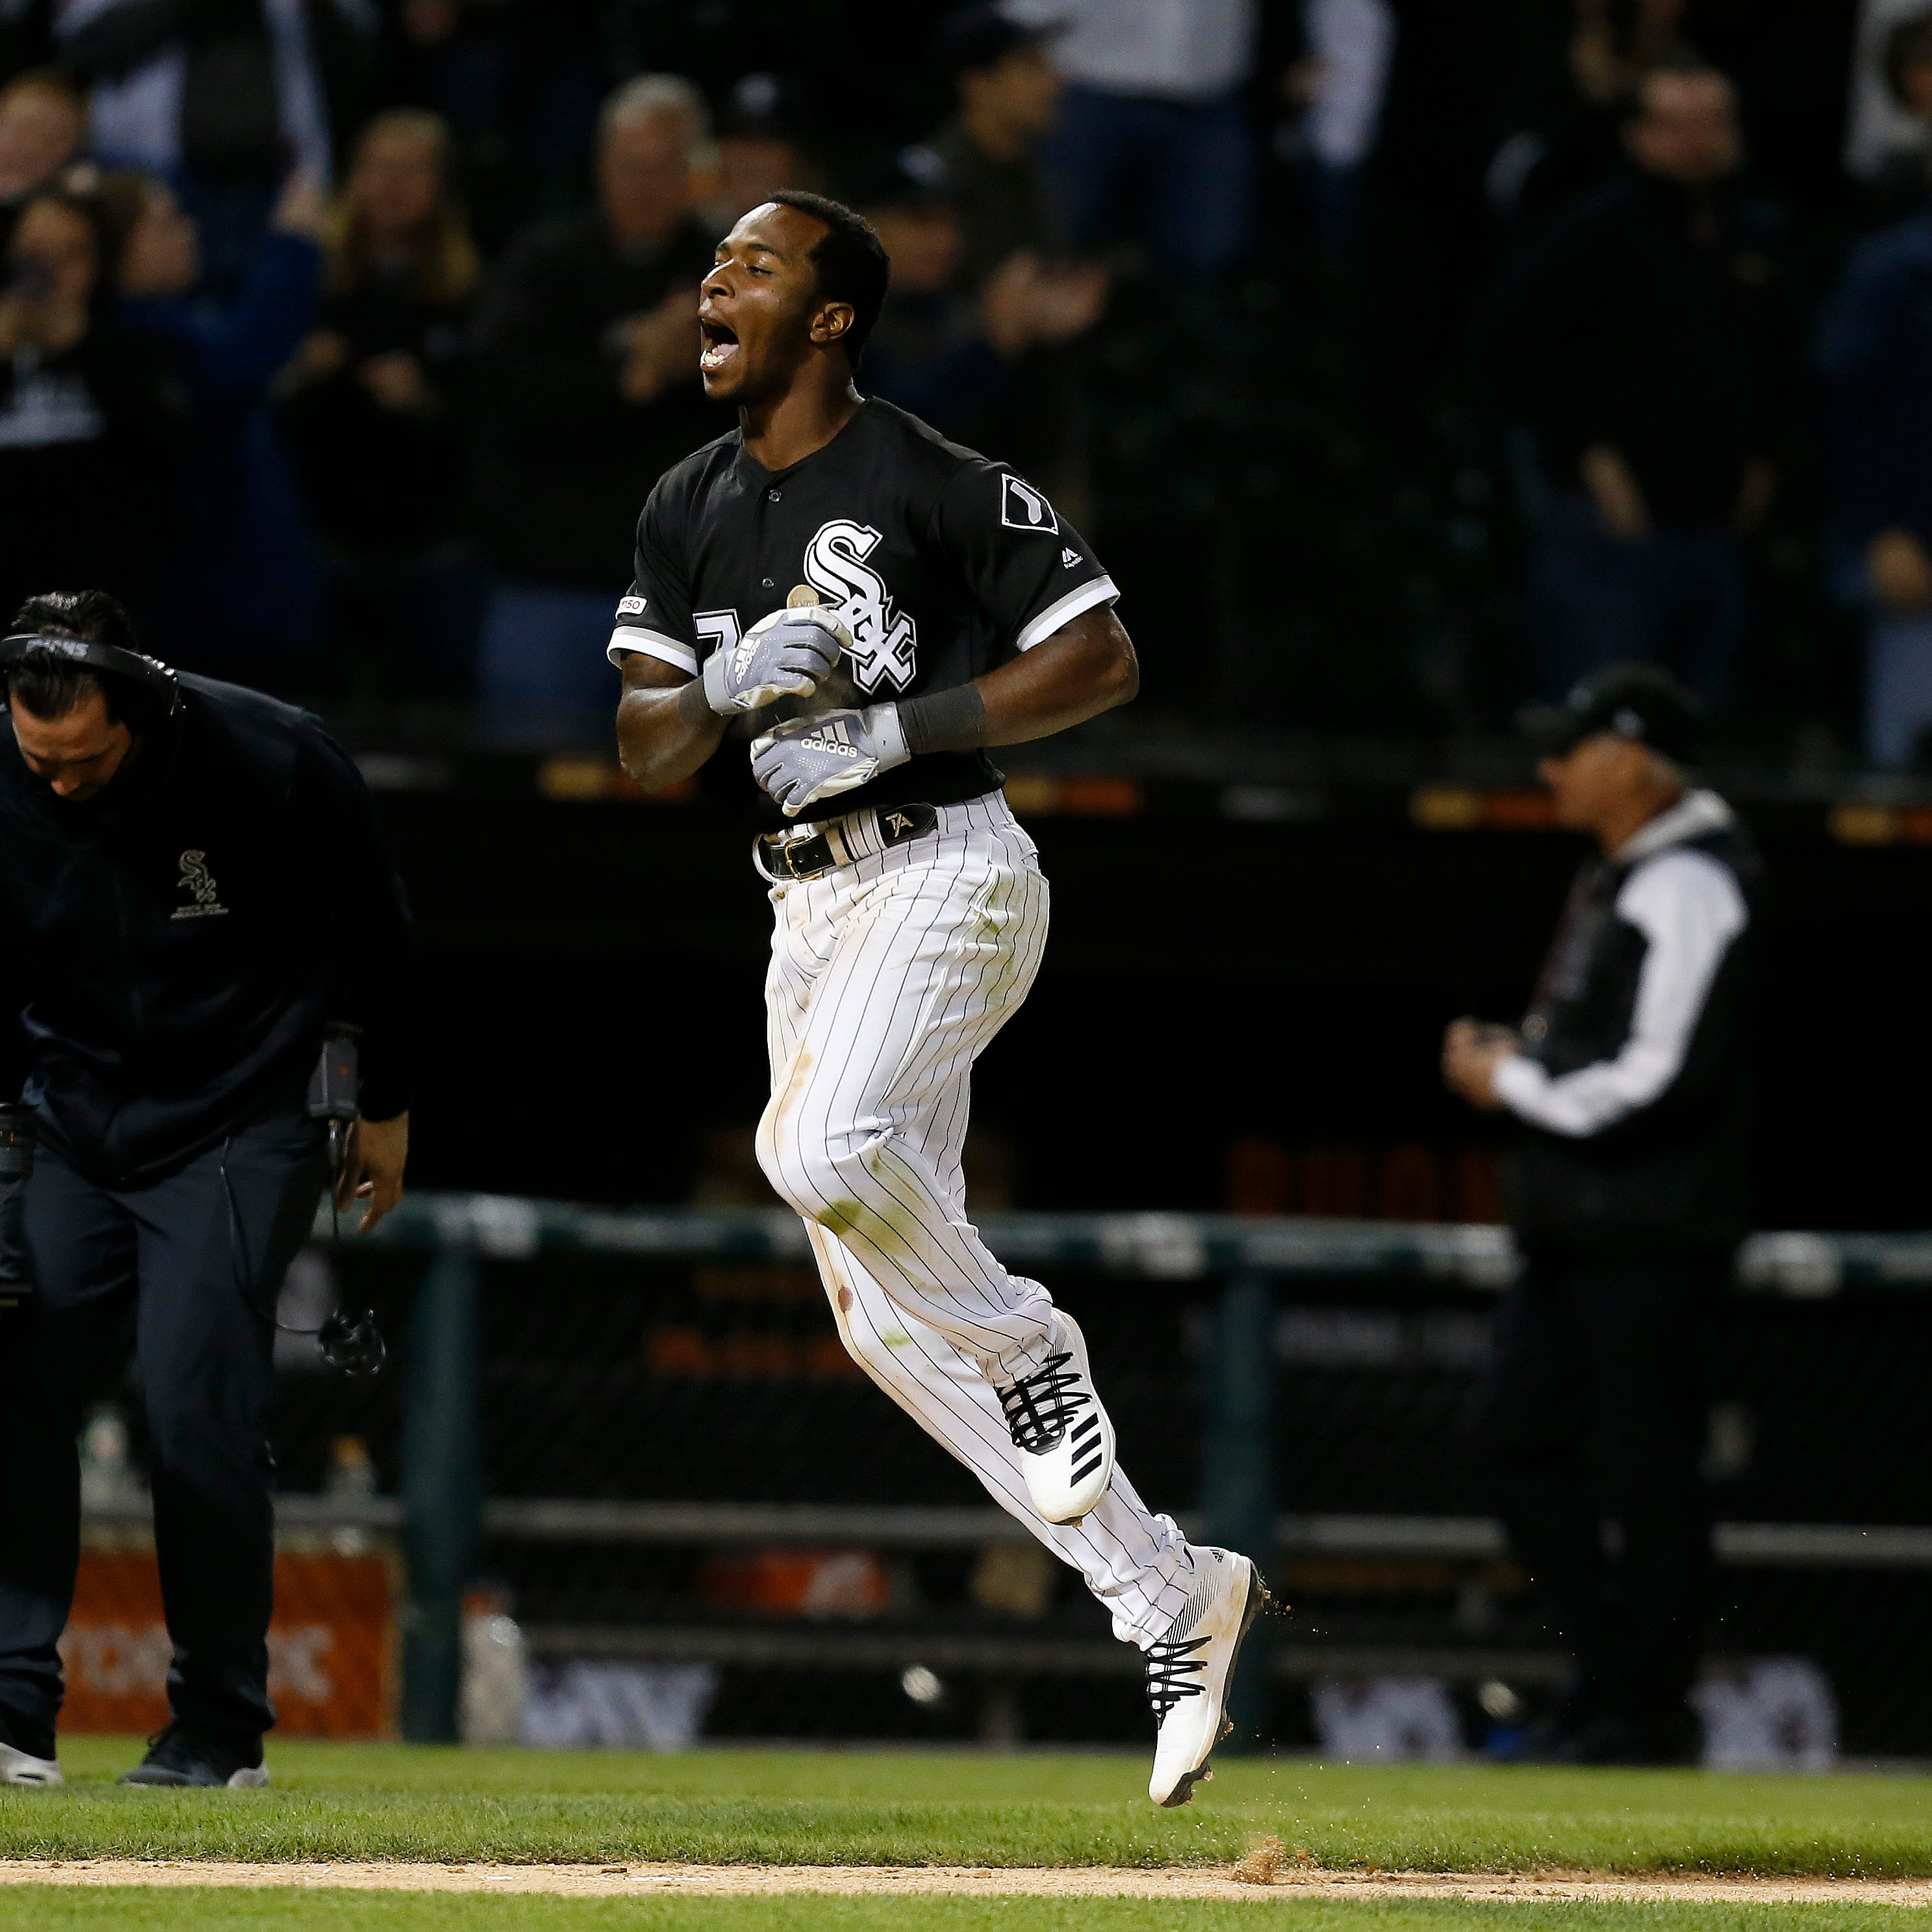 'A circus': Tigers blow 7-run lead, lose 12-11 slugfest to White Sox on walk-off HR